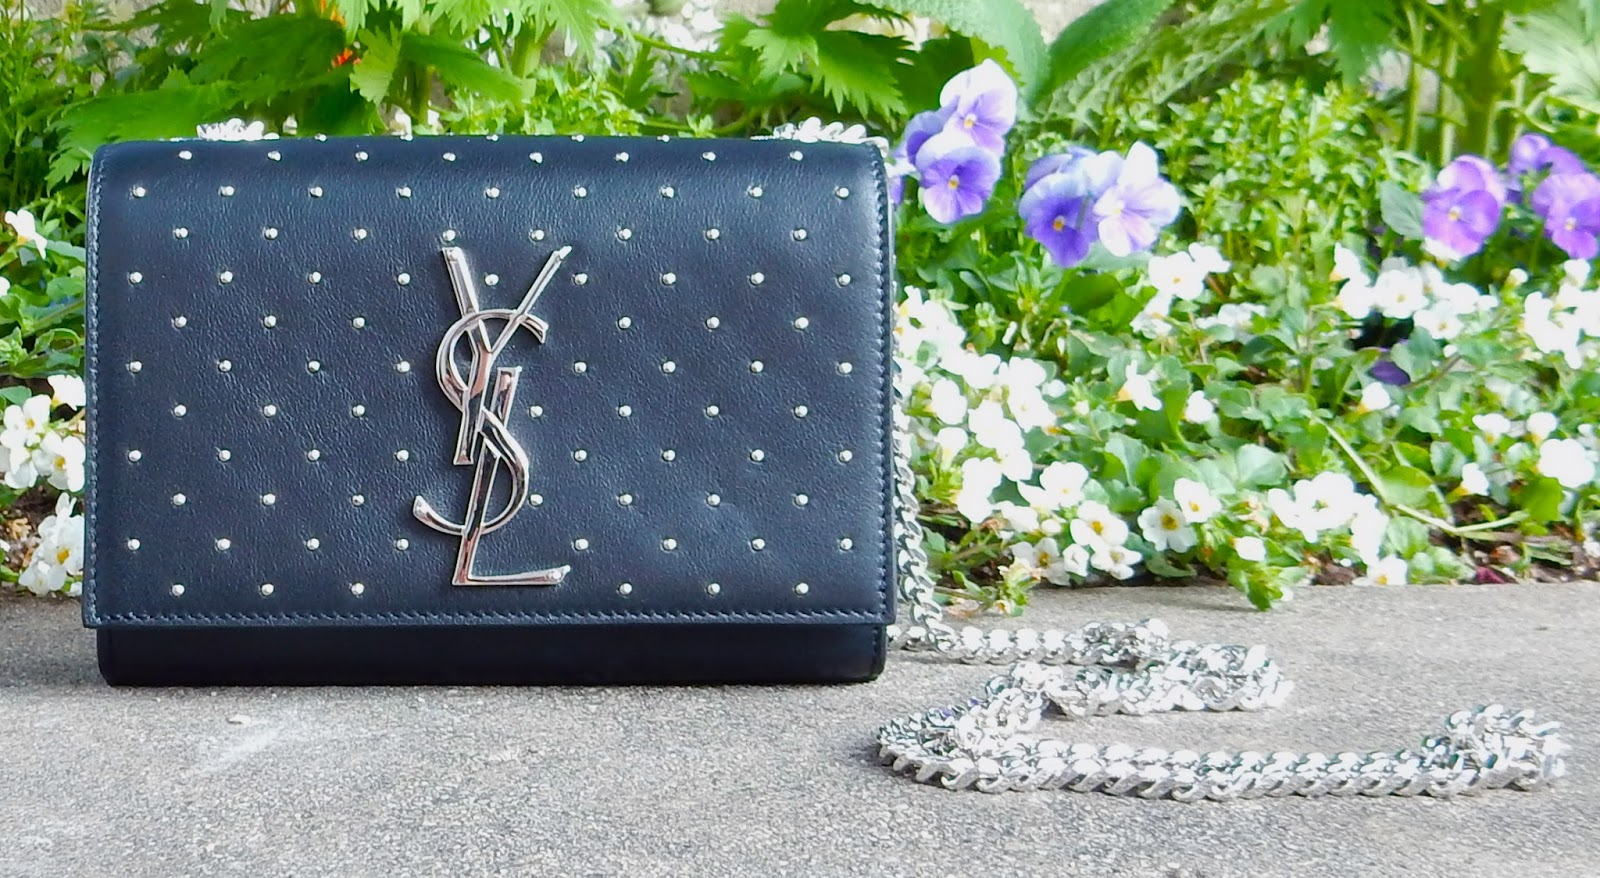 Beautiful studded YSL Crossbody Bag covered in studs and a YSL emblem.